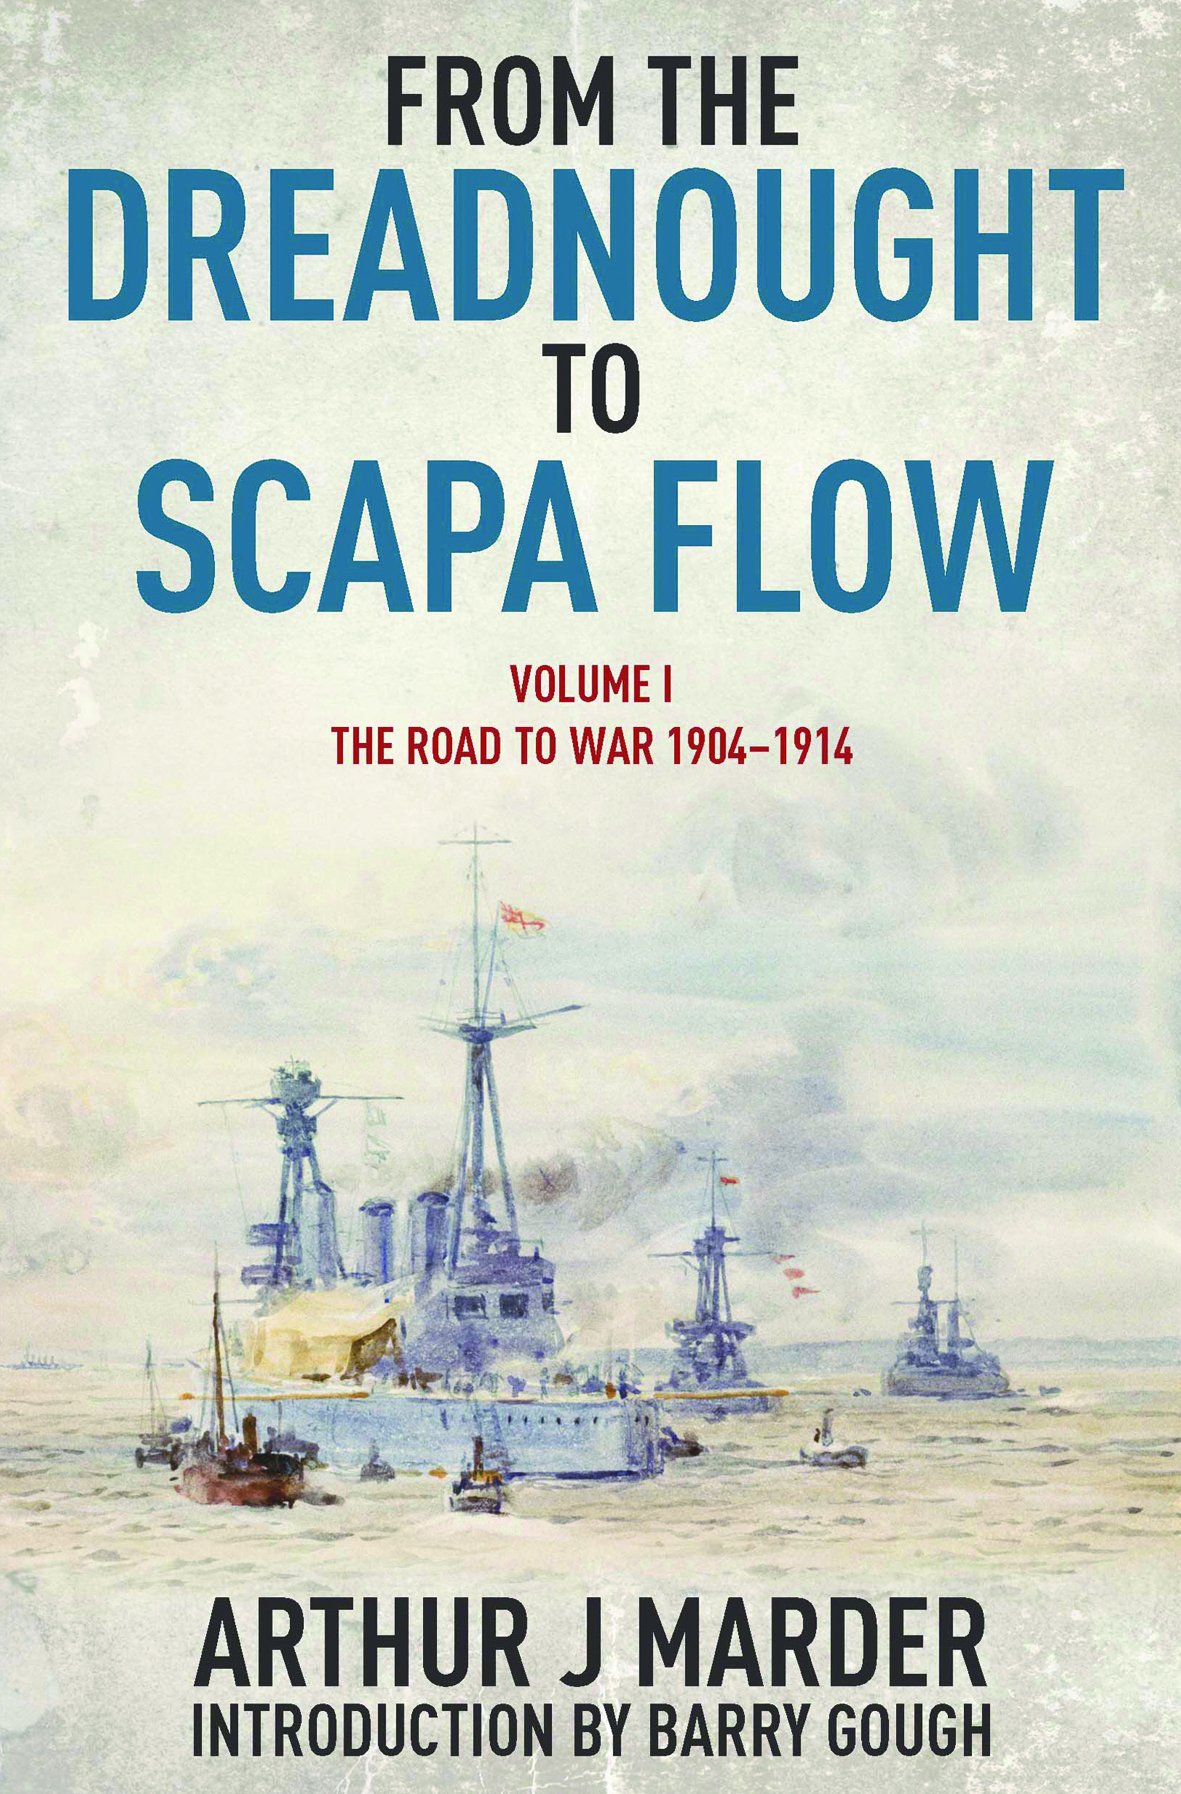 From the Dreadnought to Scapa Flow: Volume I: The Road to War 1904-1914 pdf epub